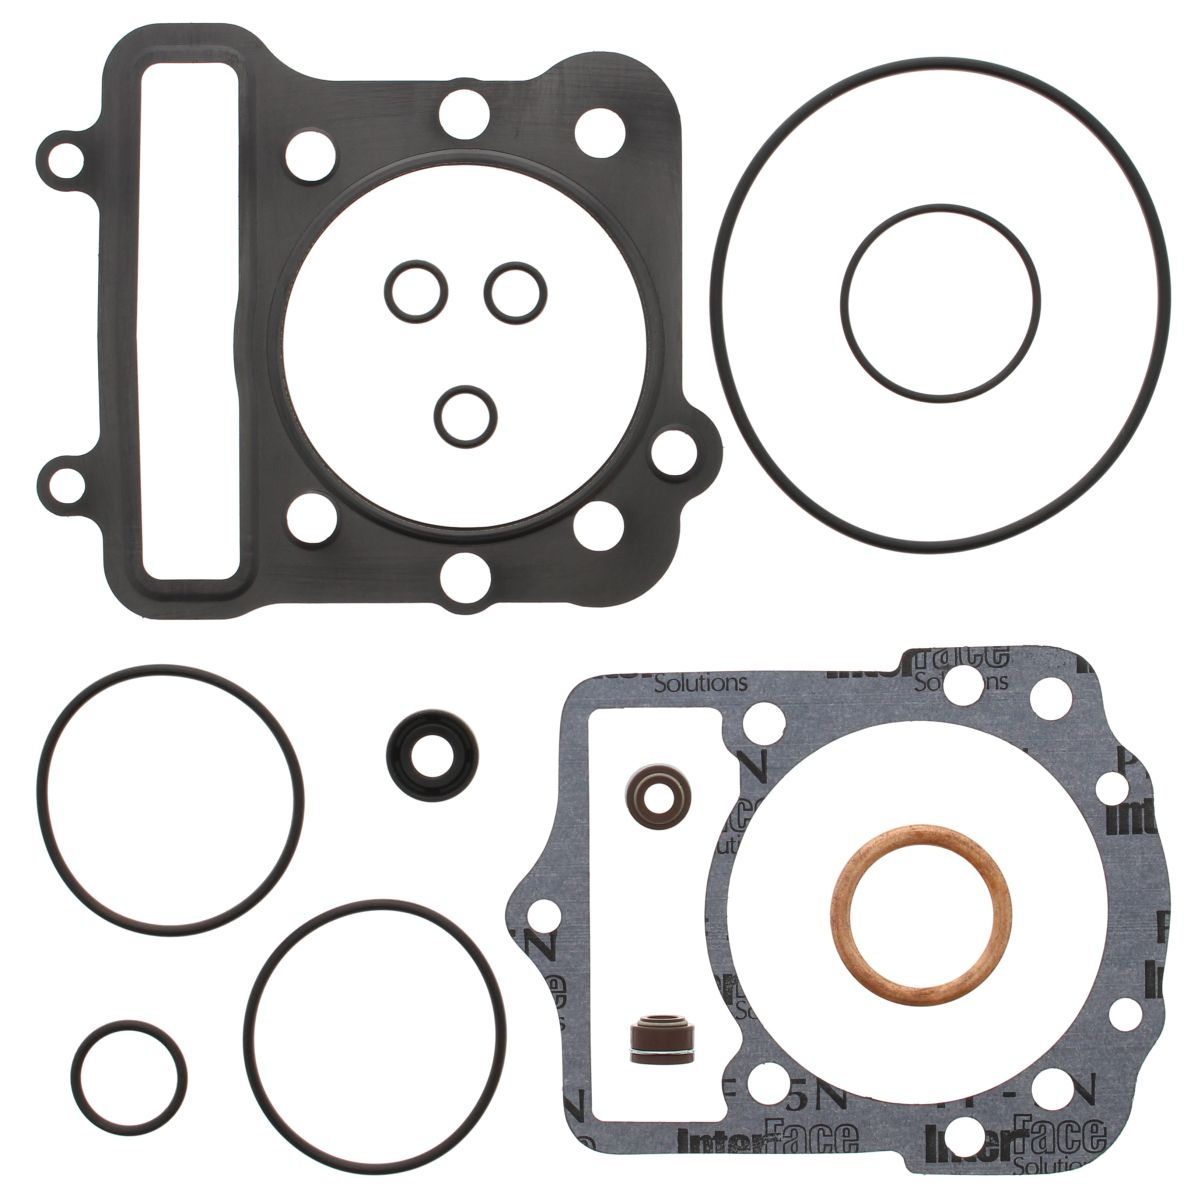 Auto Parts and Vehicles KAWASAKI BAYOU LAKOTA 300 ENGINE COMPLETE GASKETS KIT ATV, Side-by-Side & UTV Body & Frame